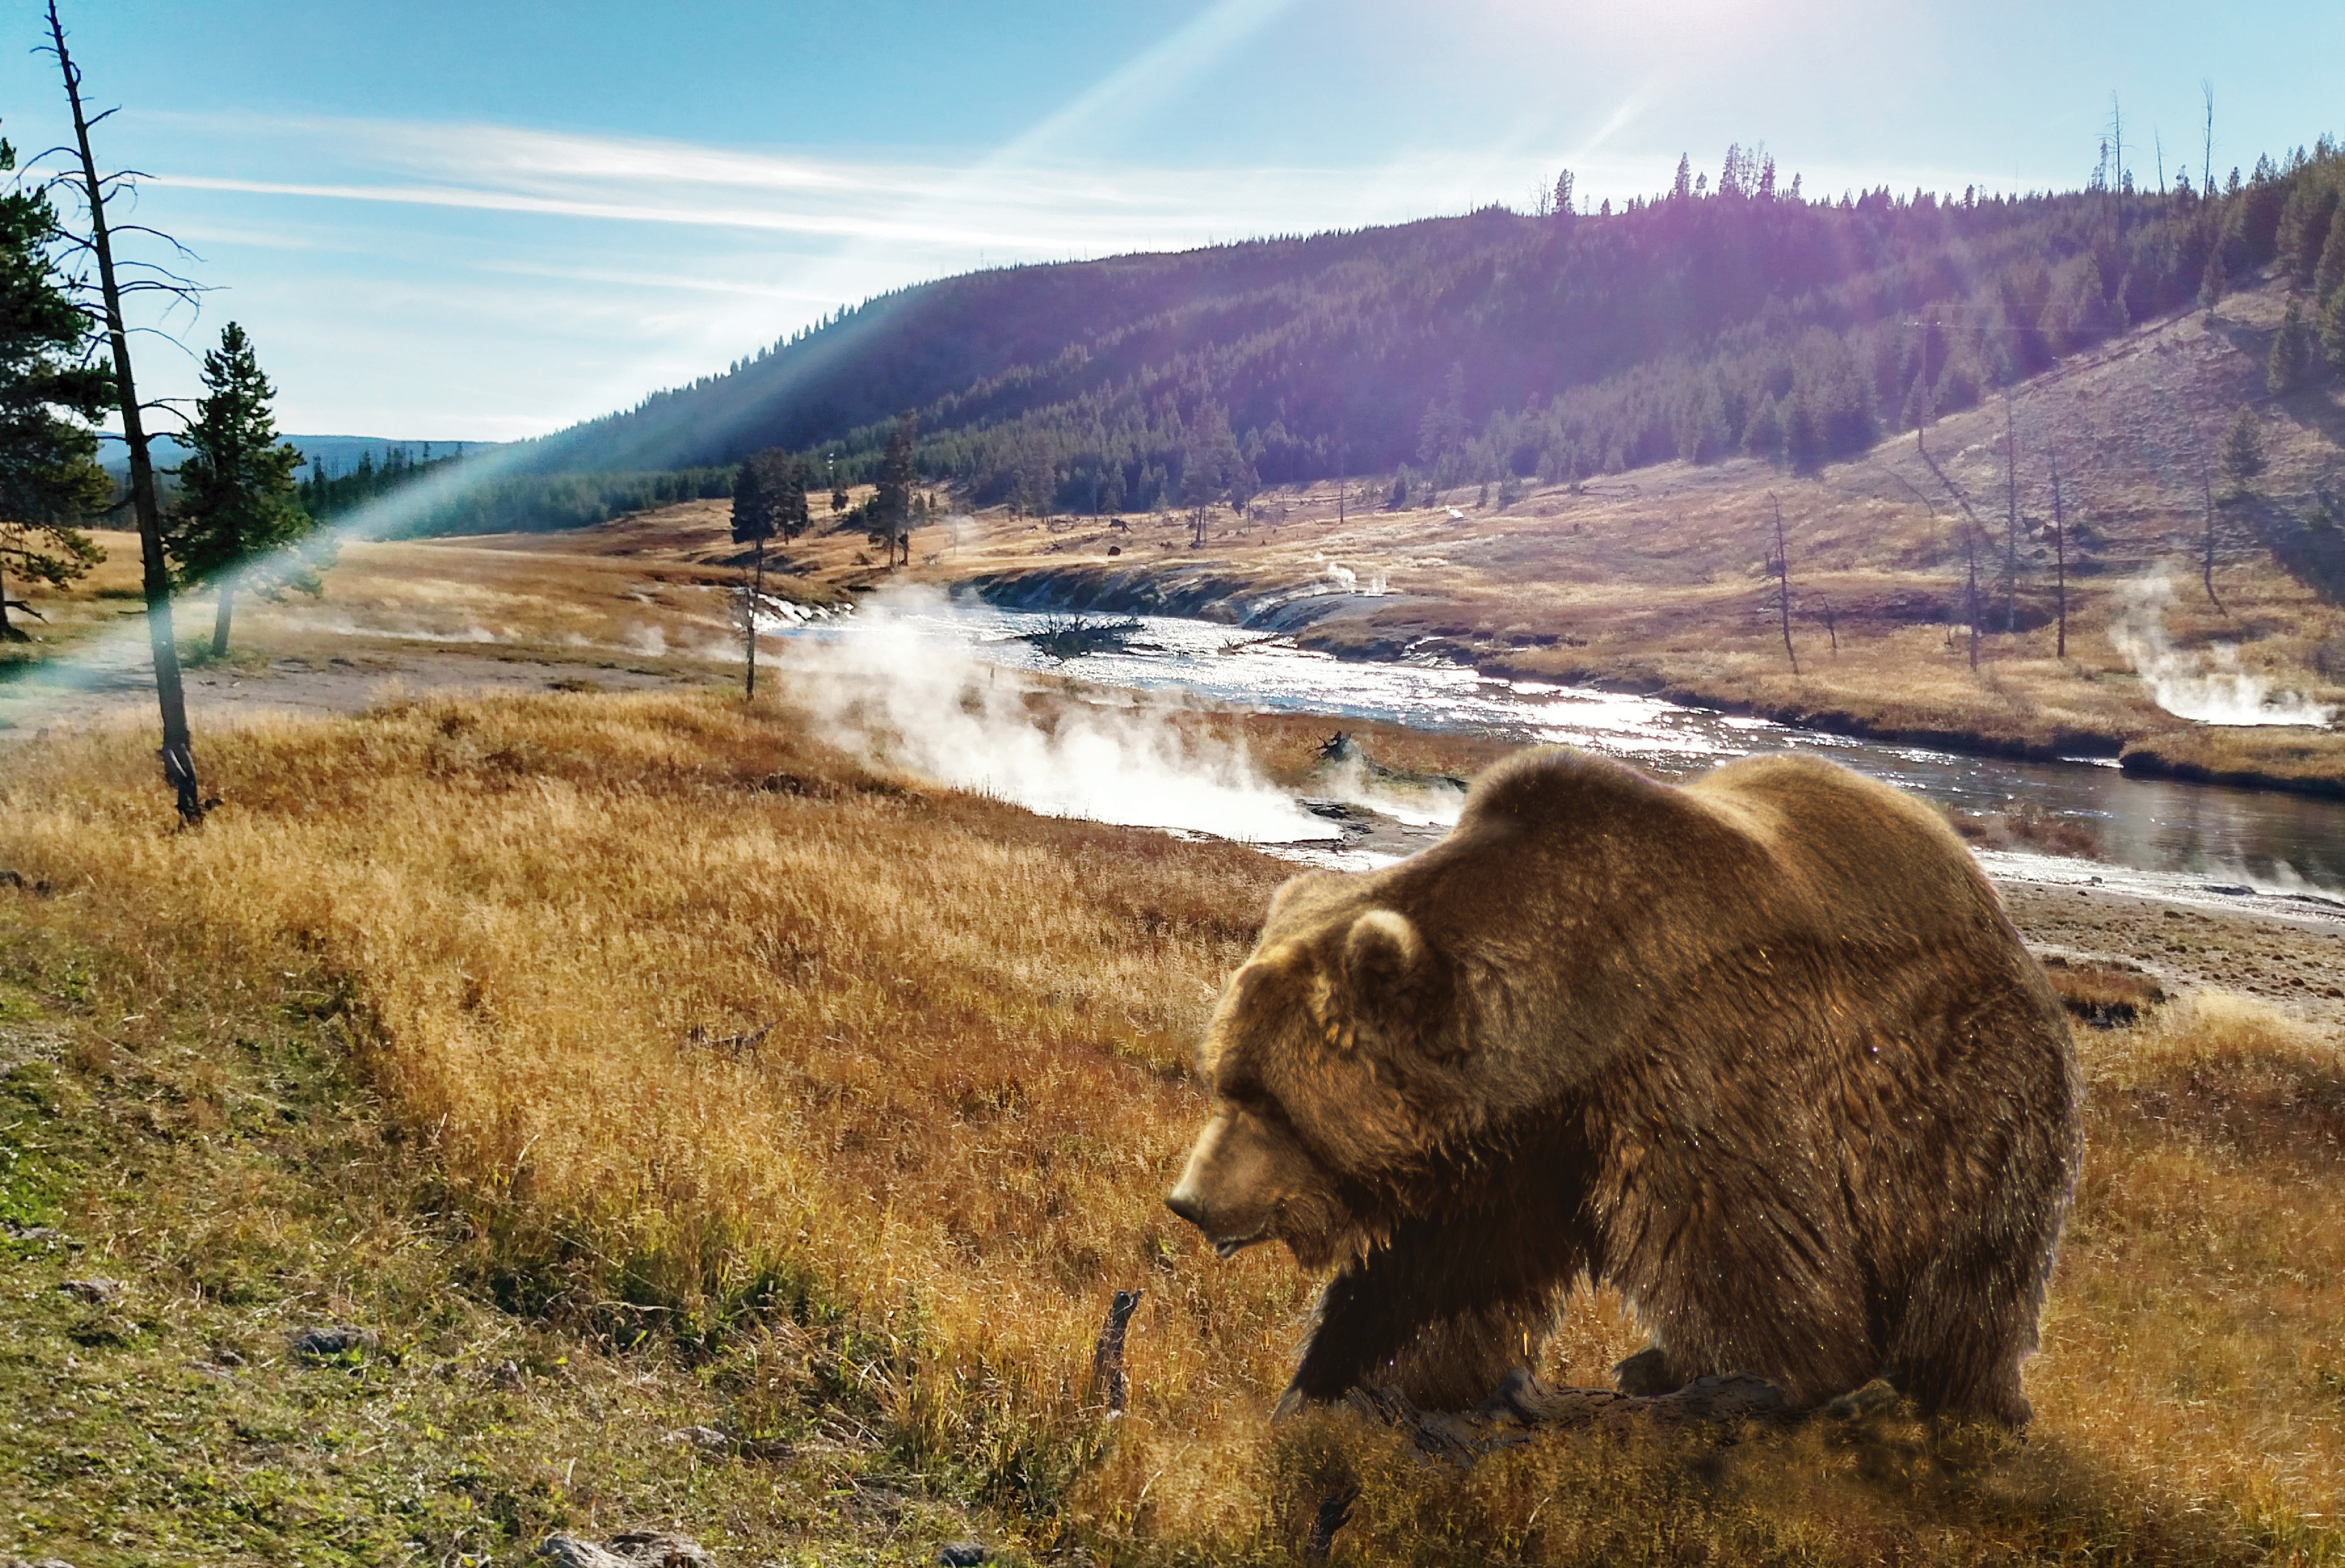 grizzly bear near hot springs on the yellowstone river